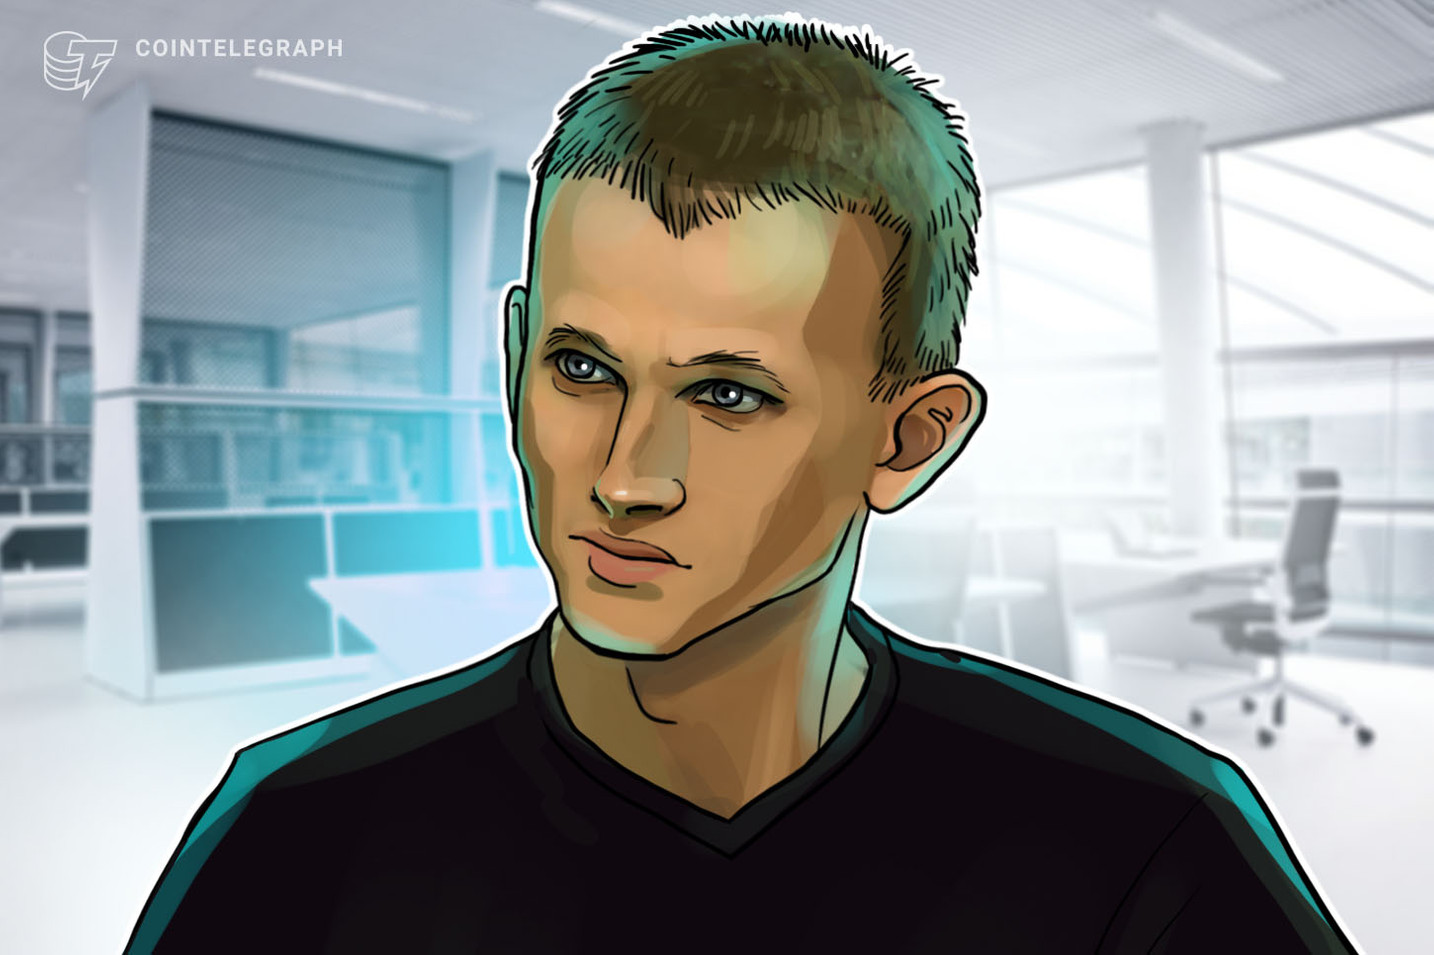 Even Vitalik Buterin is surprised at just how long Eth2 is taking